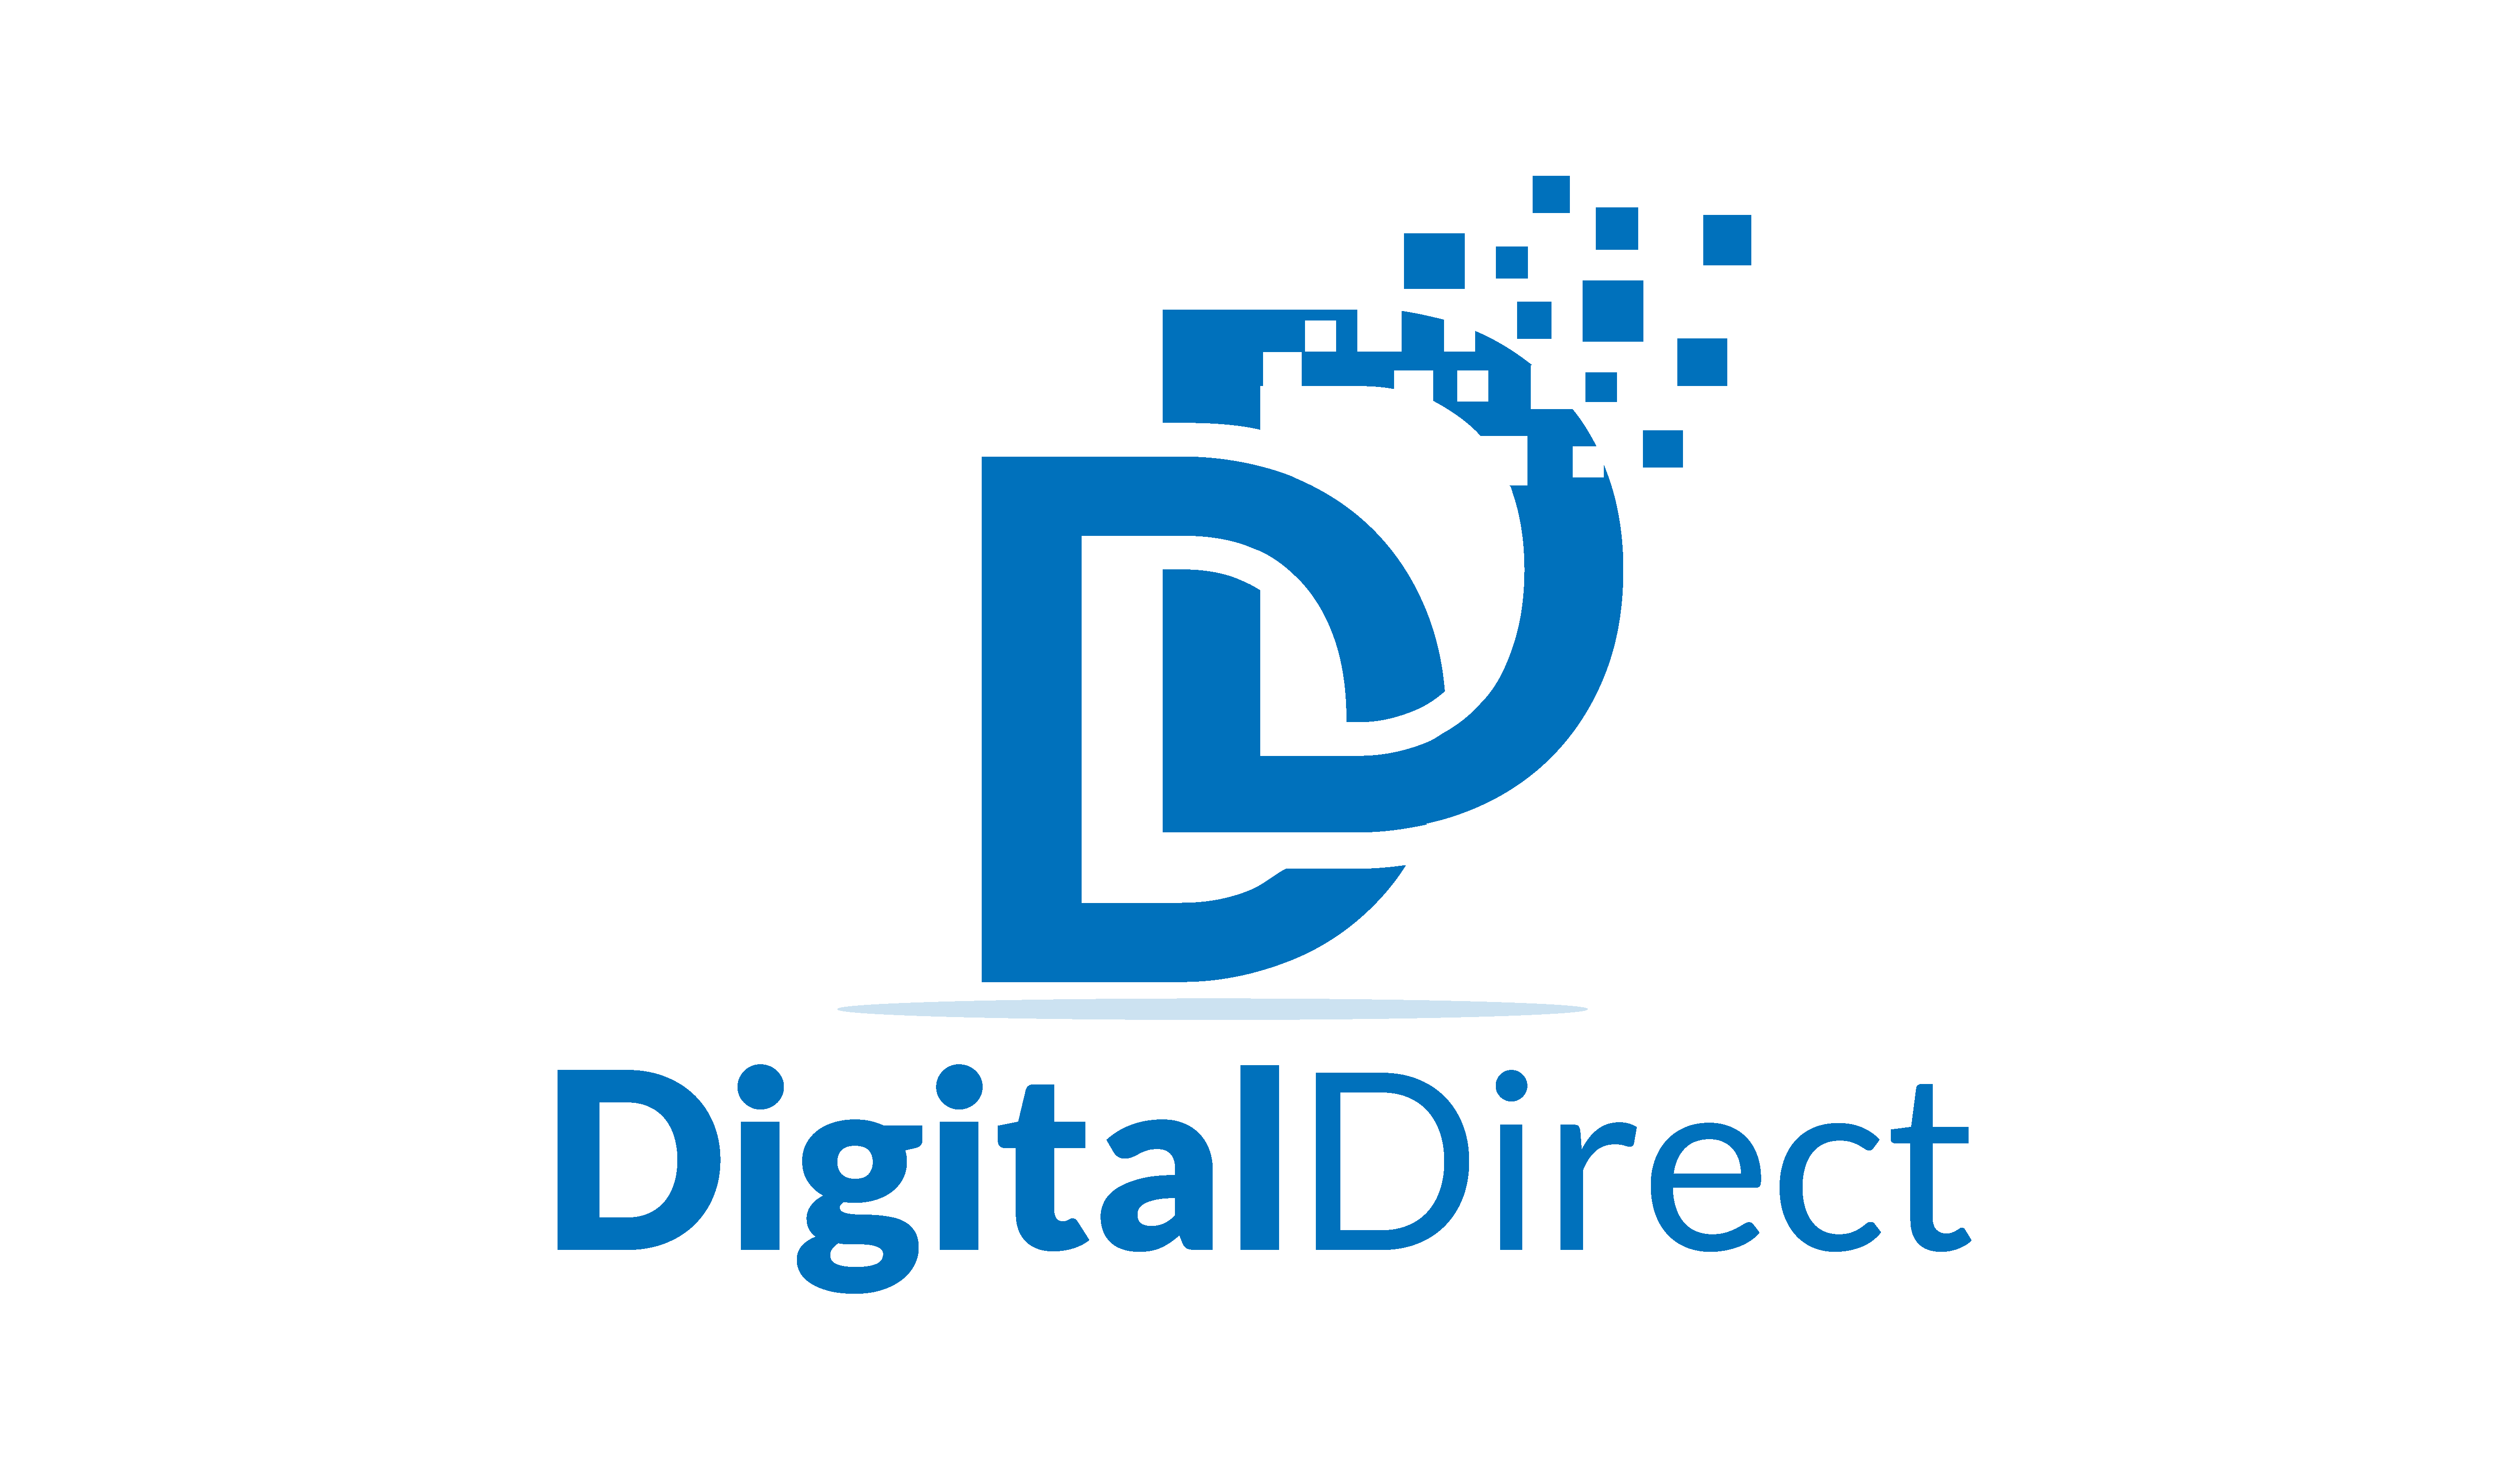 DigitalDirect